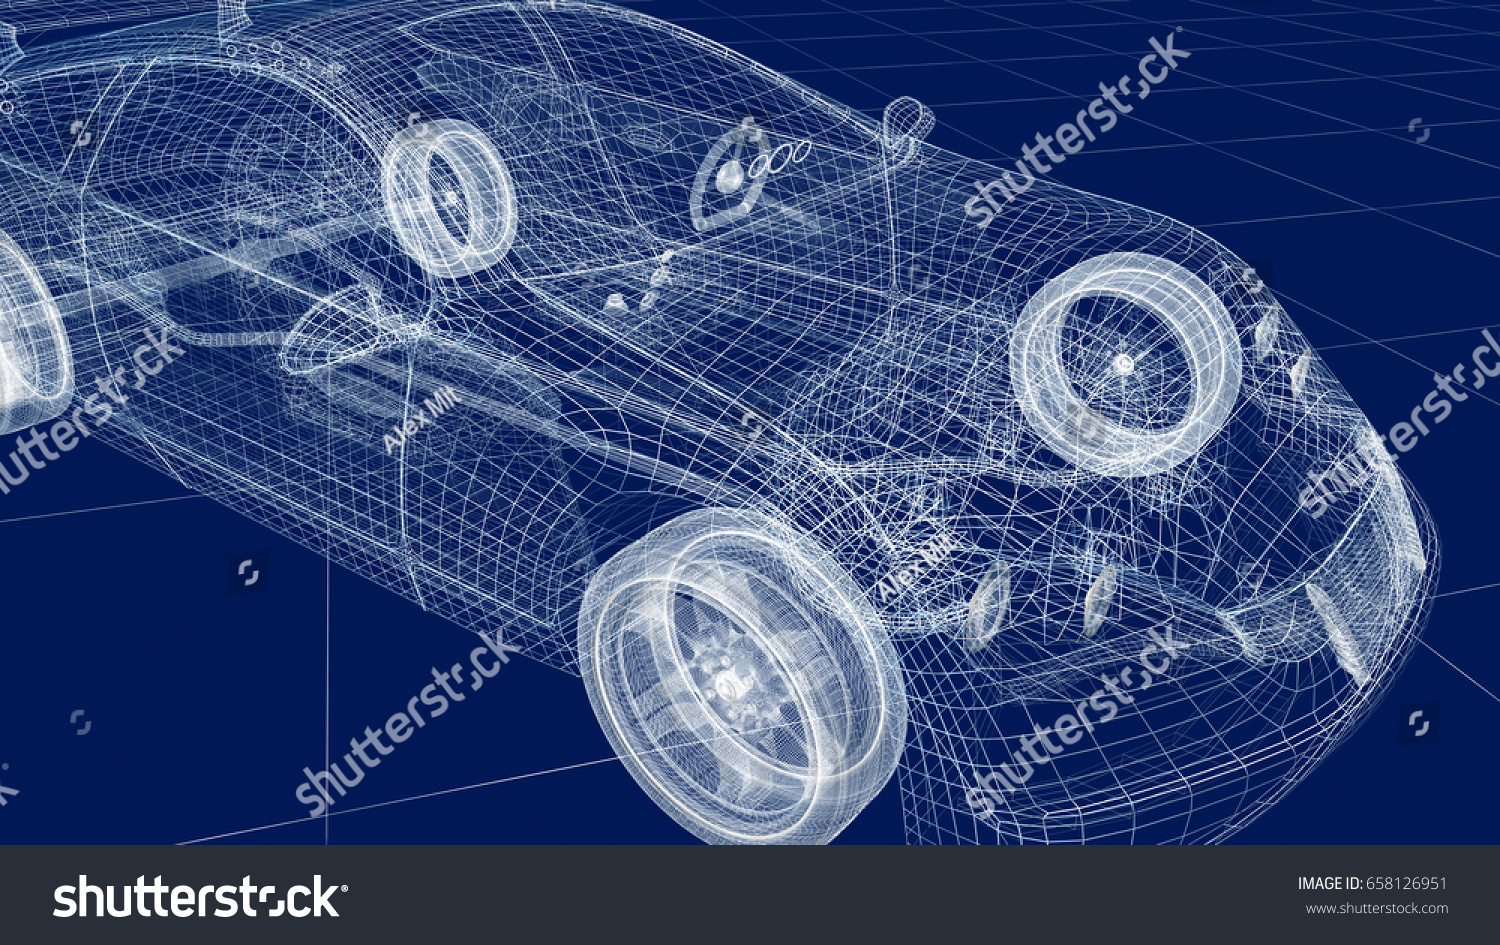 Jaguar Xj13 Blueprint Transparent Car Design Wire Model 3 D Illustration Stock